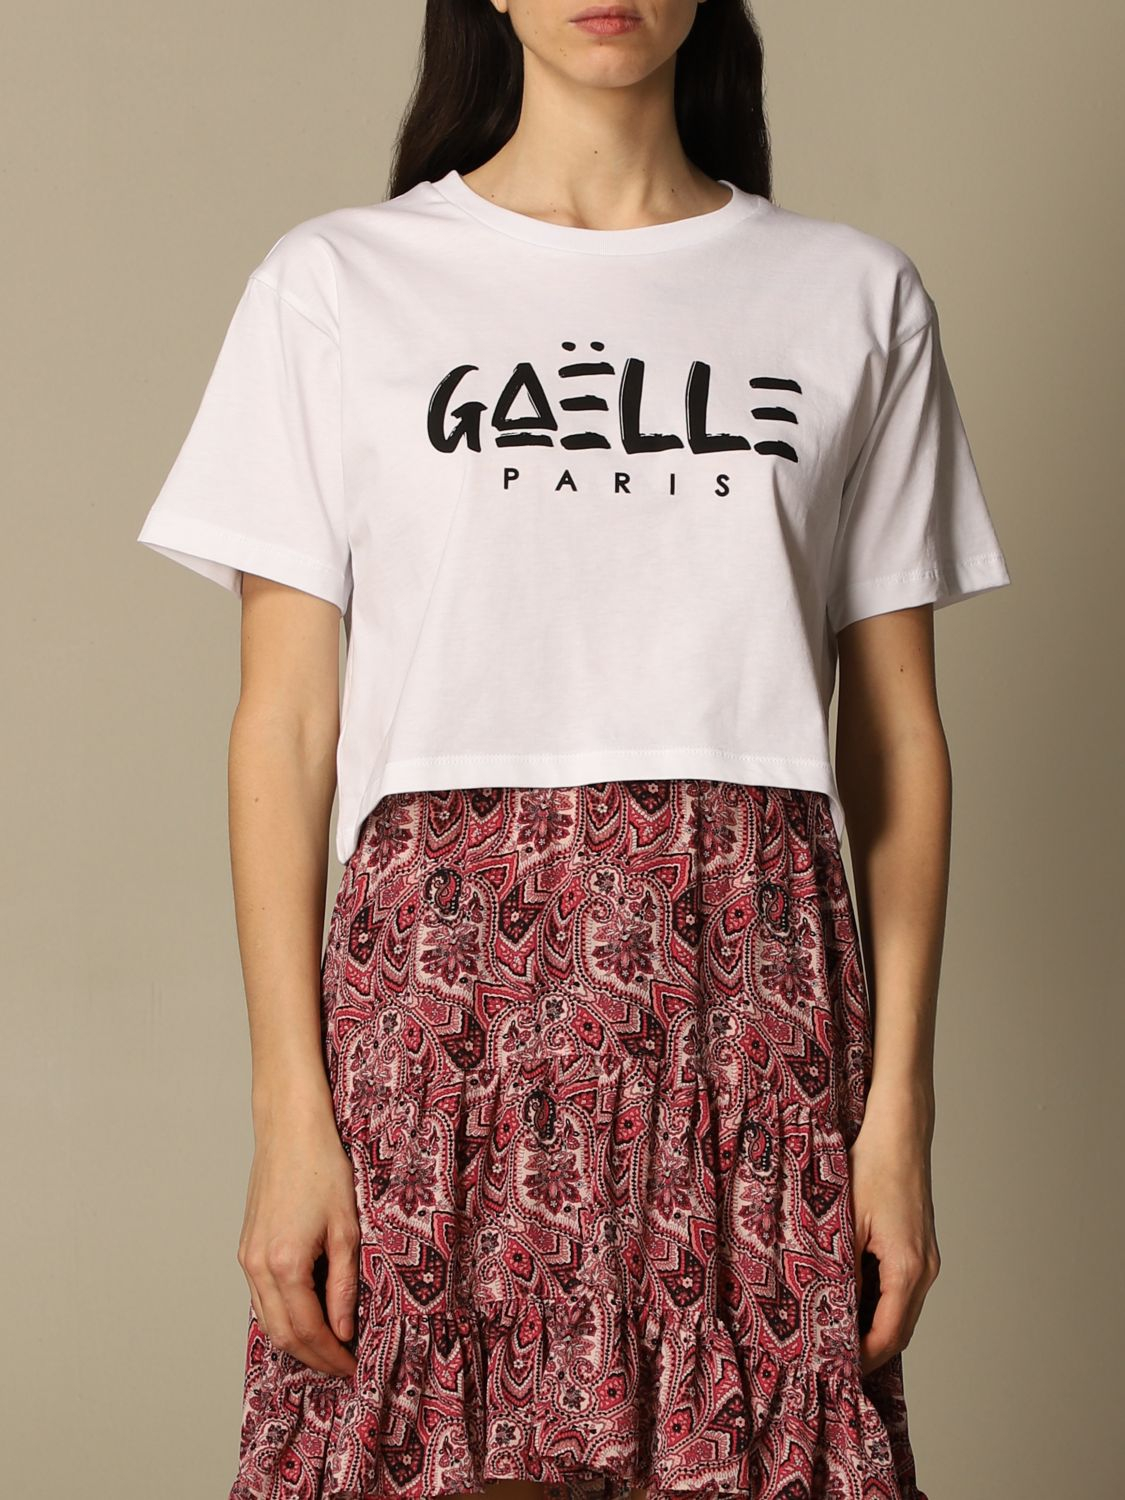 T-shirt a scatoletta gaelle paris